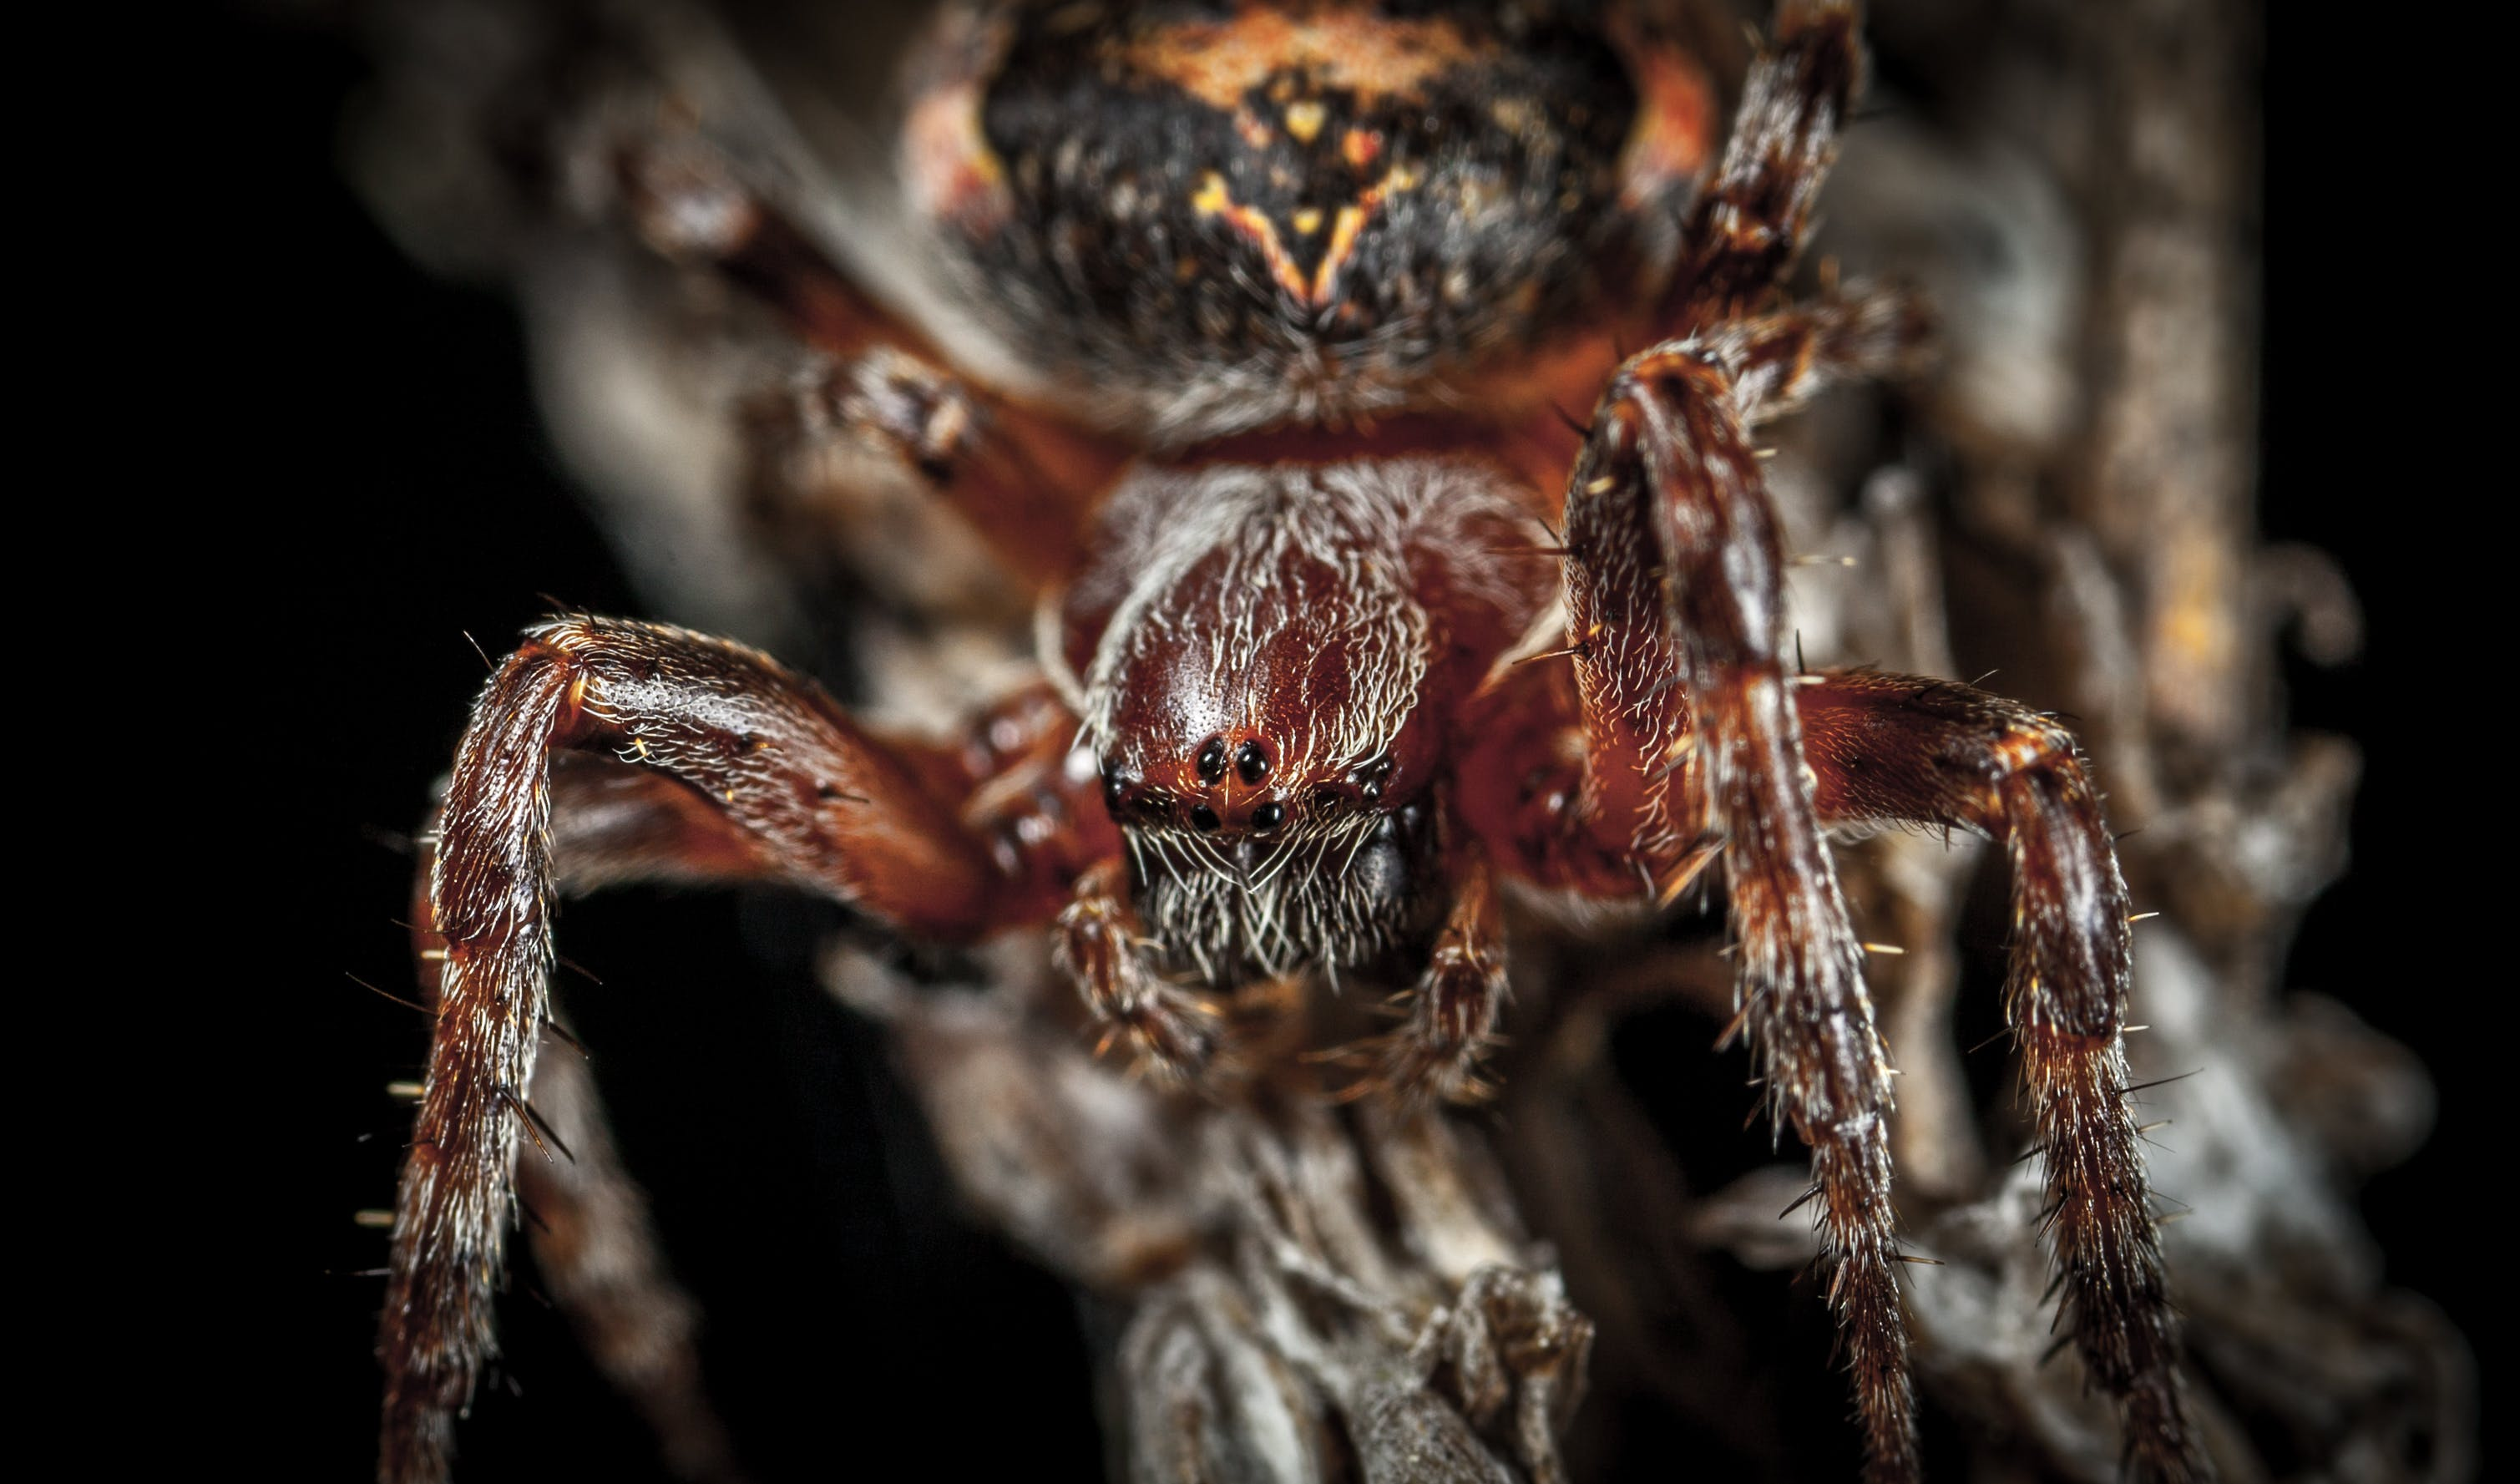 Micro Photography of Spider